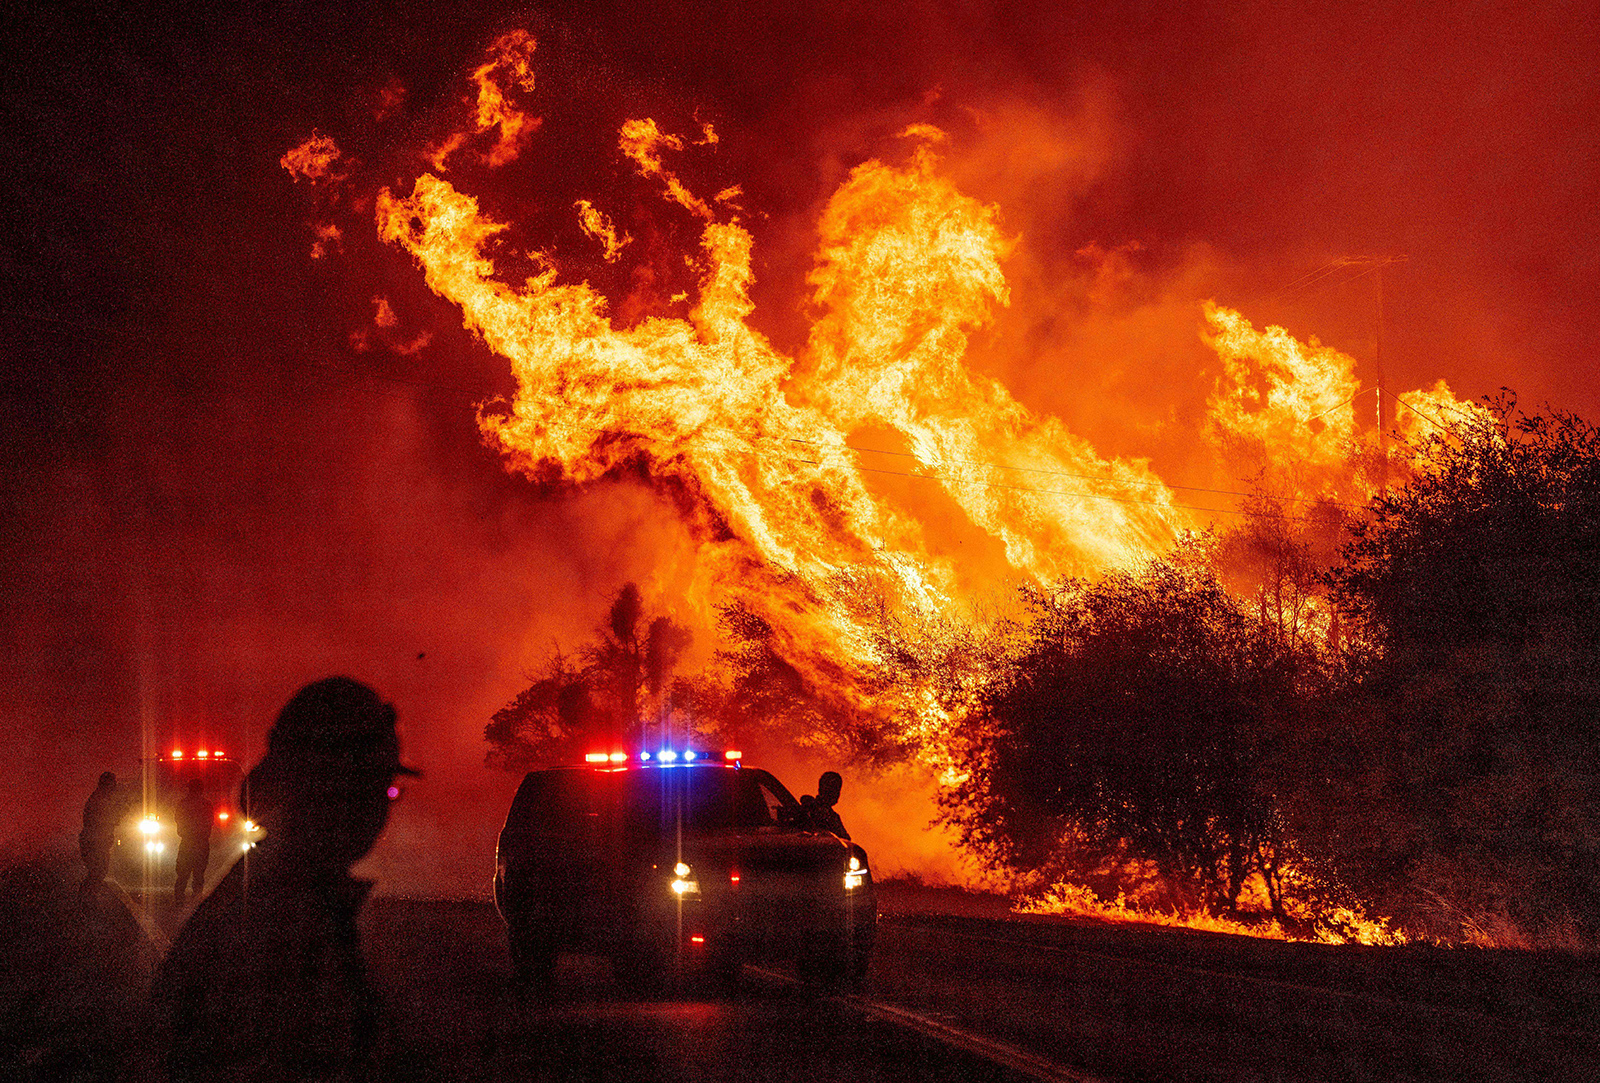 A law enforcement officer watches flames launch into the air as fire continues to spread at the Bear fire in Oroville, California on September 9.